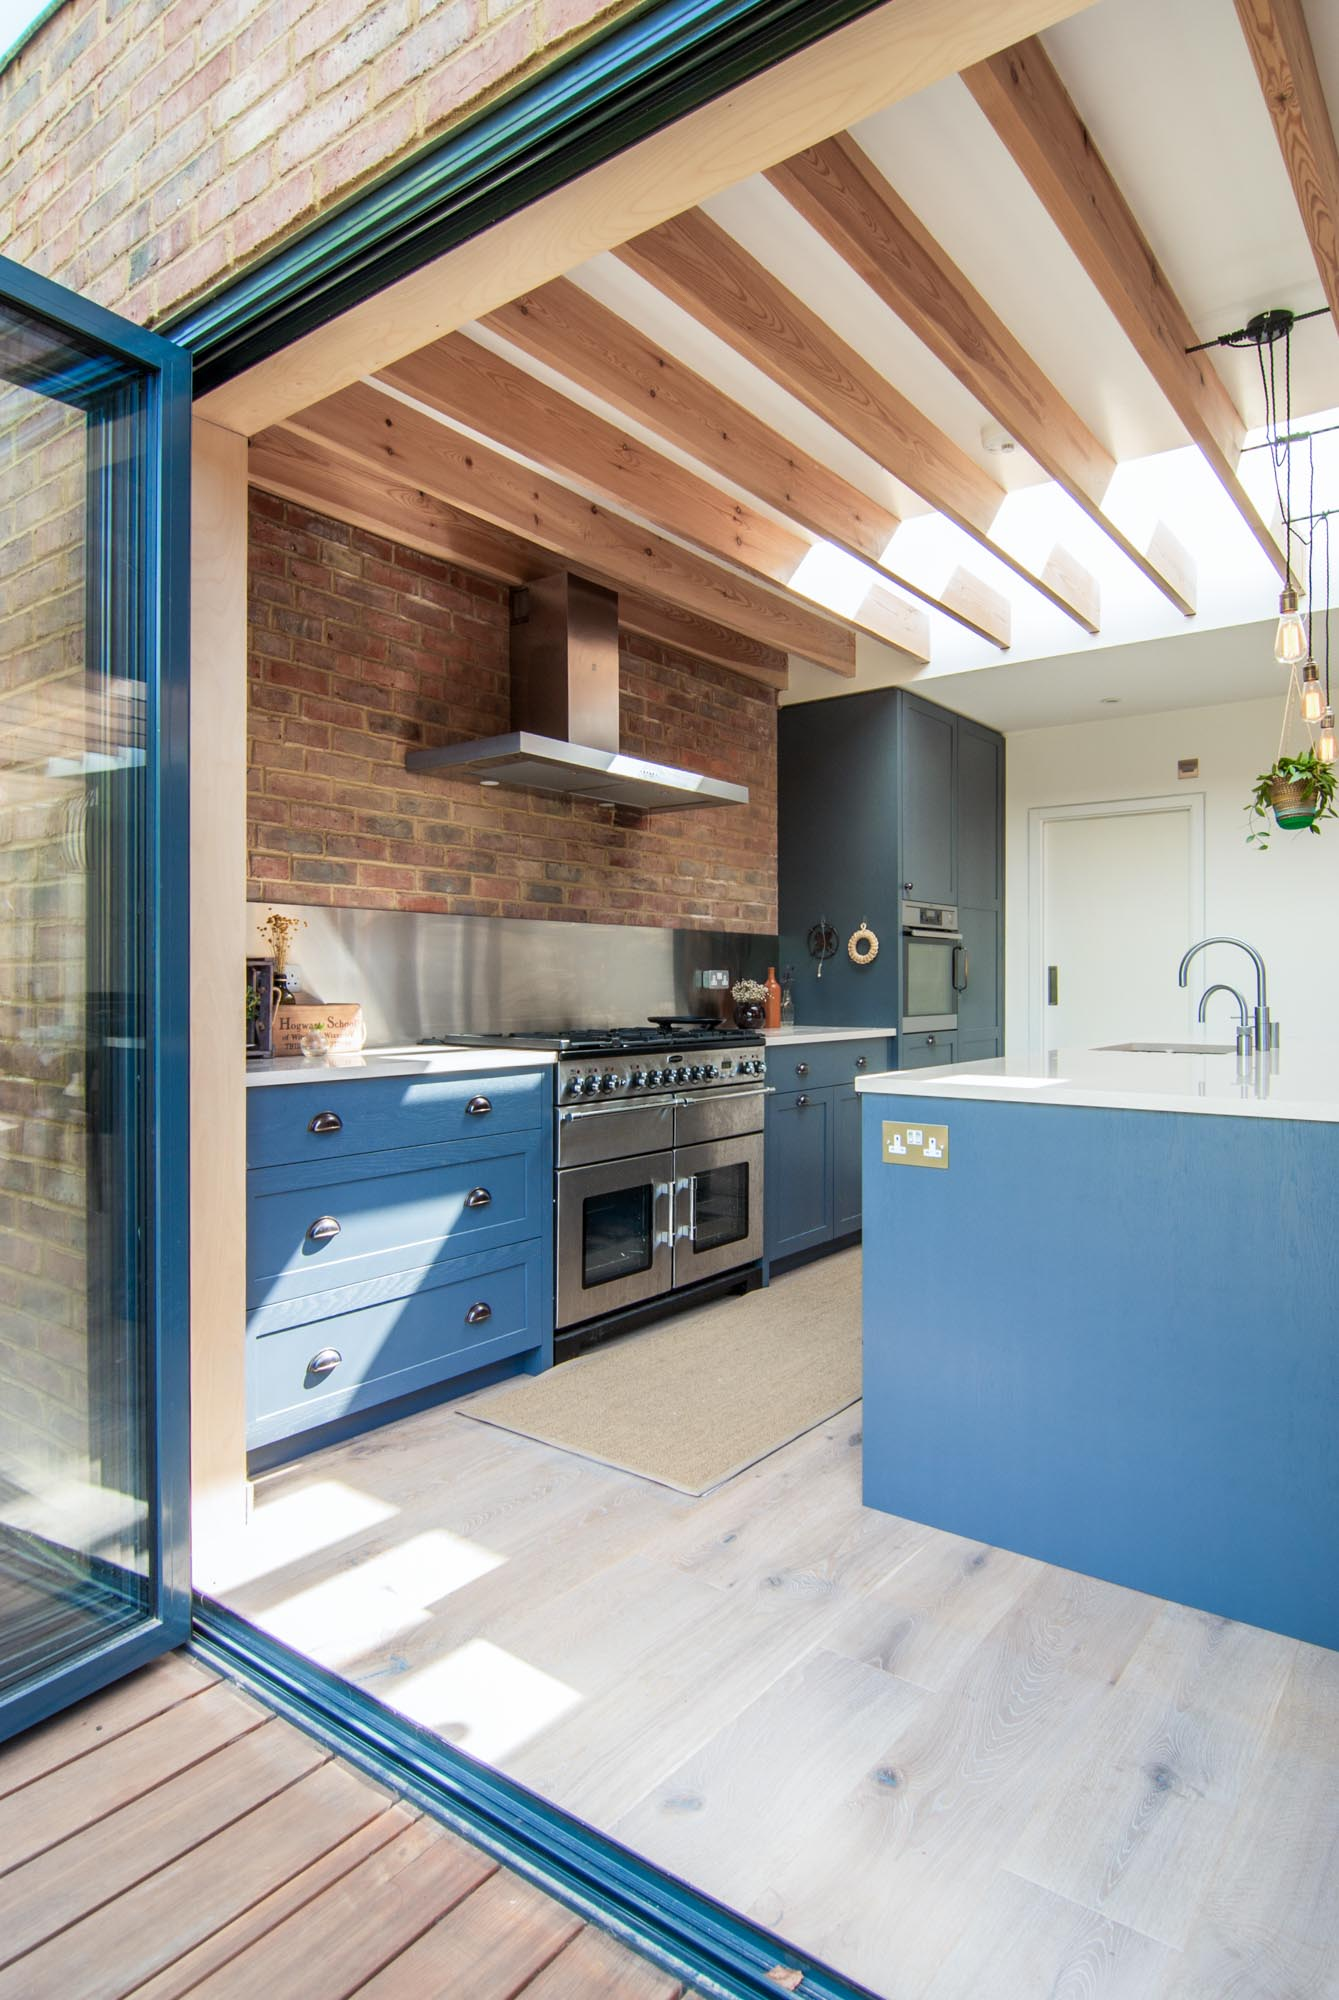 Close up of the large blue doors and a perspective view of the kitchen.